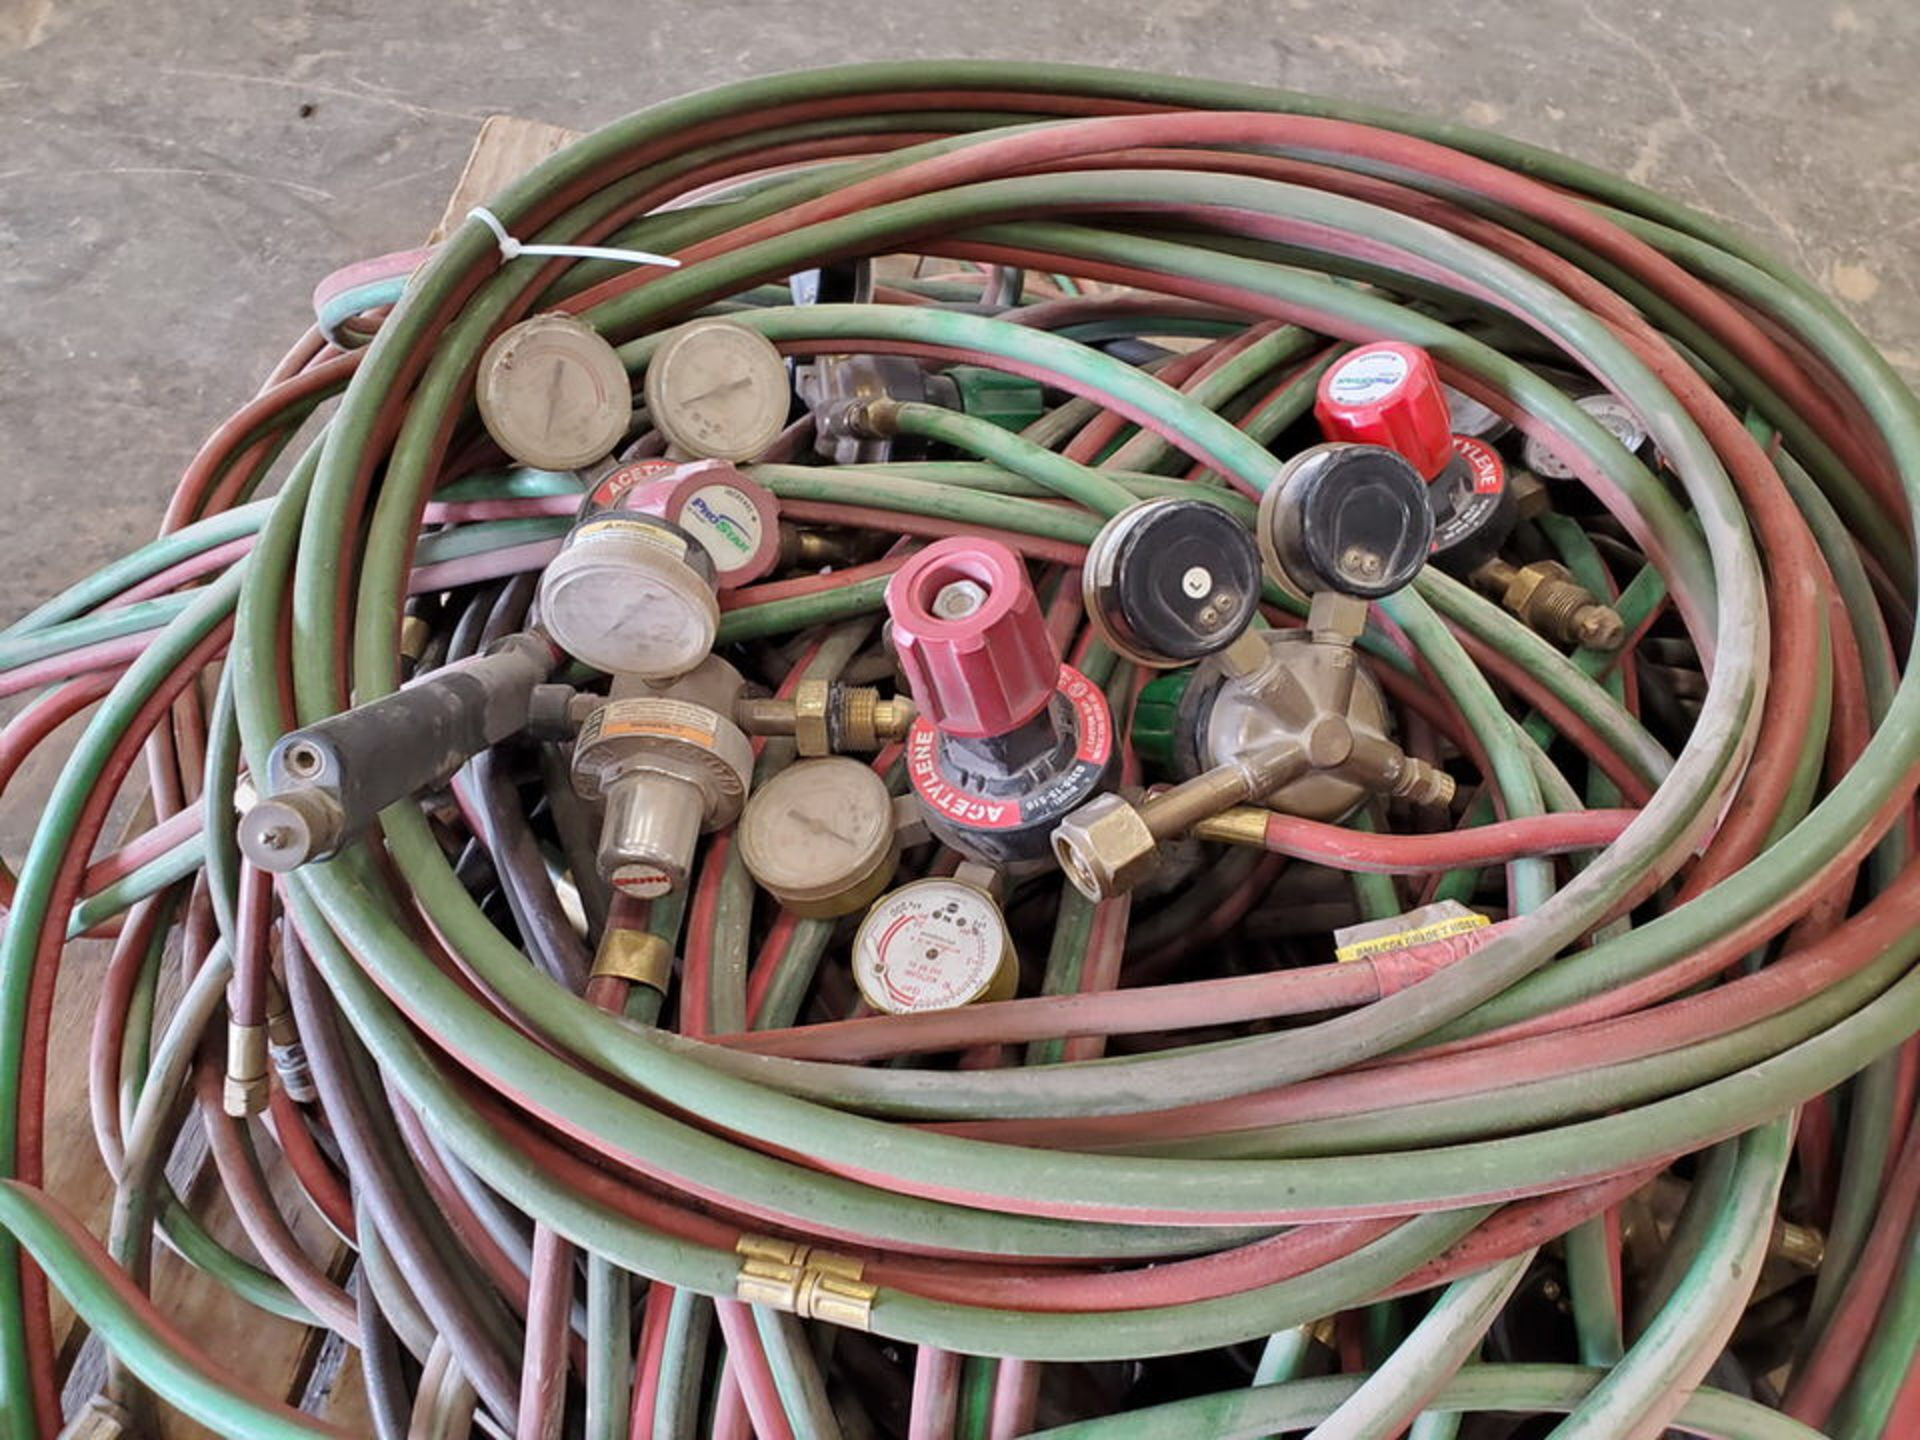 Regulator Hose Lines - Image 6 of 6